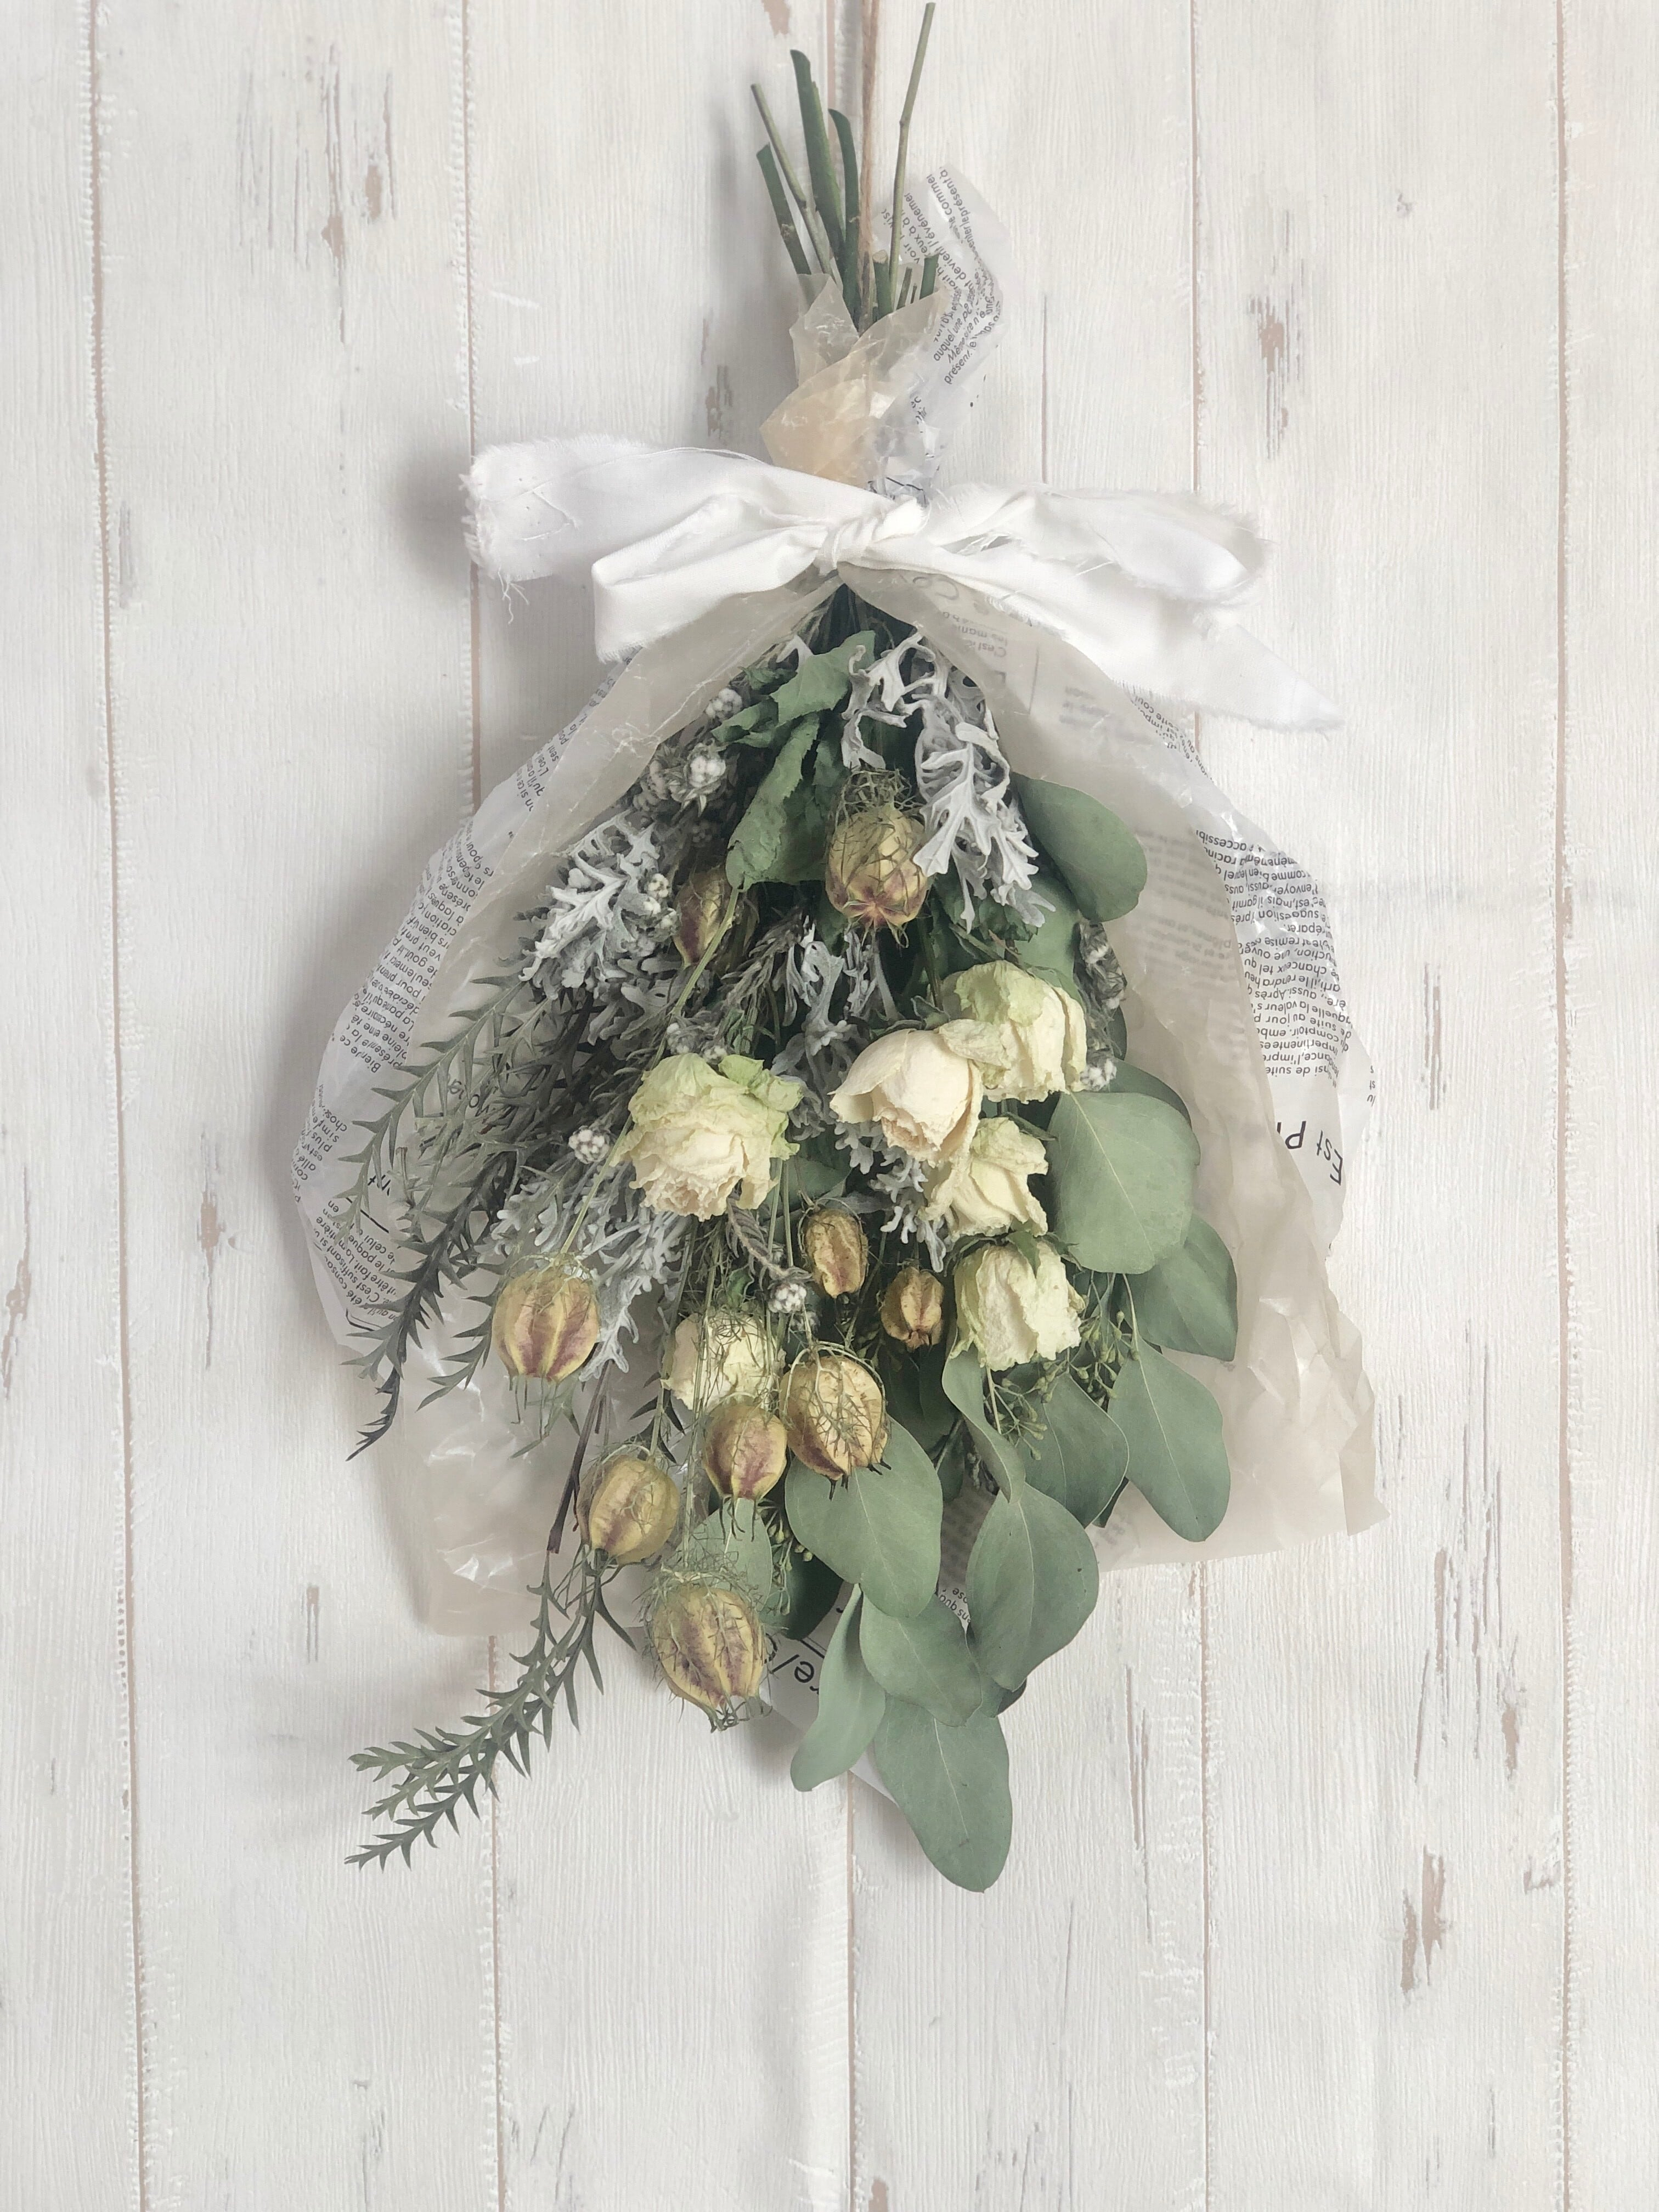 (Re:II) 限定商品 / Dried Flower スワッグType:B